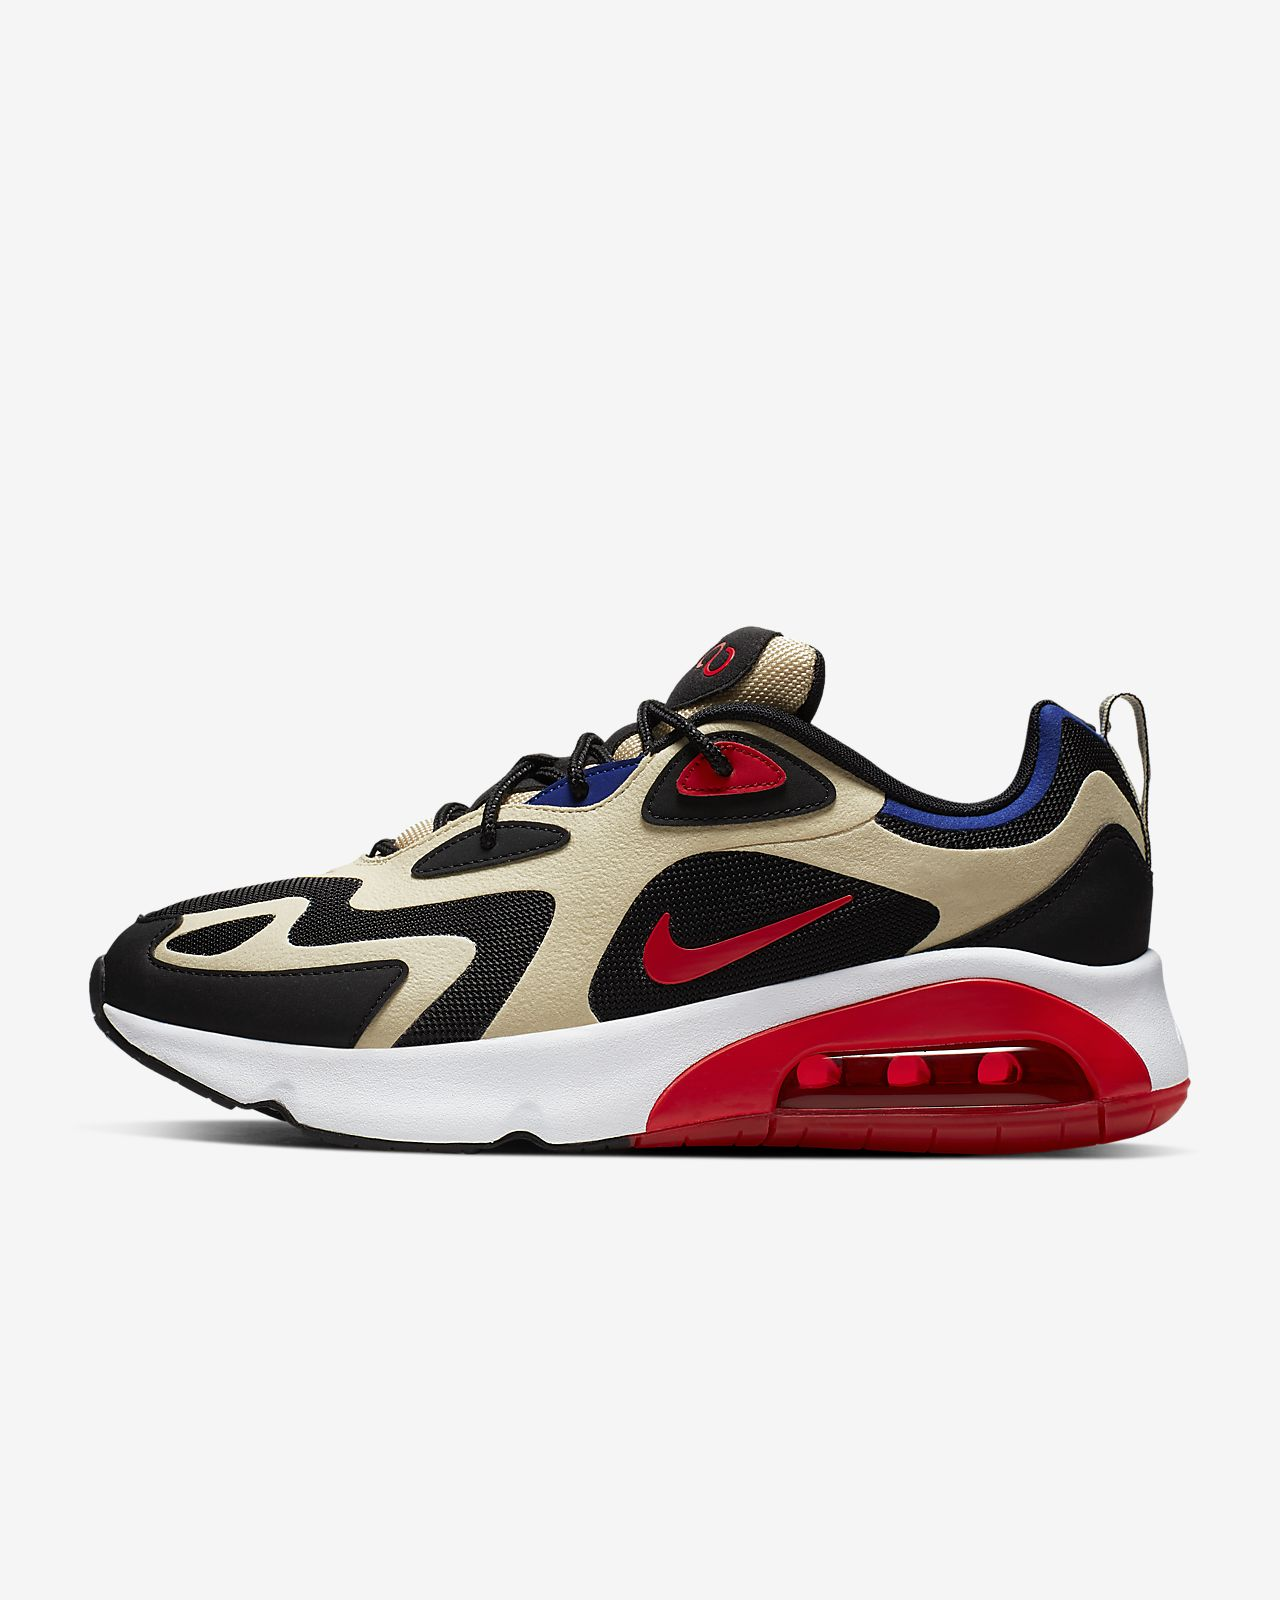 Nike Air Max 200 (World's Fastest Man) Men's Shoe